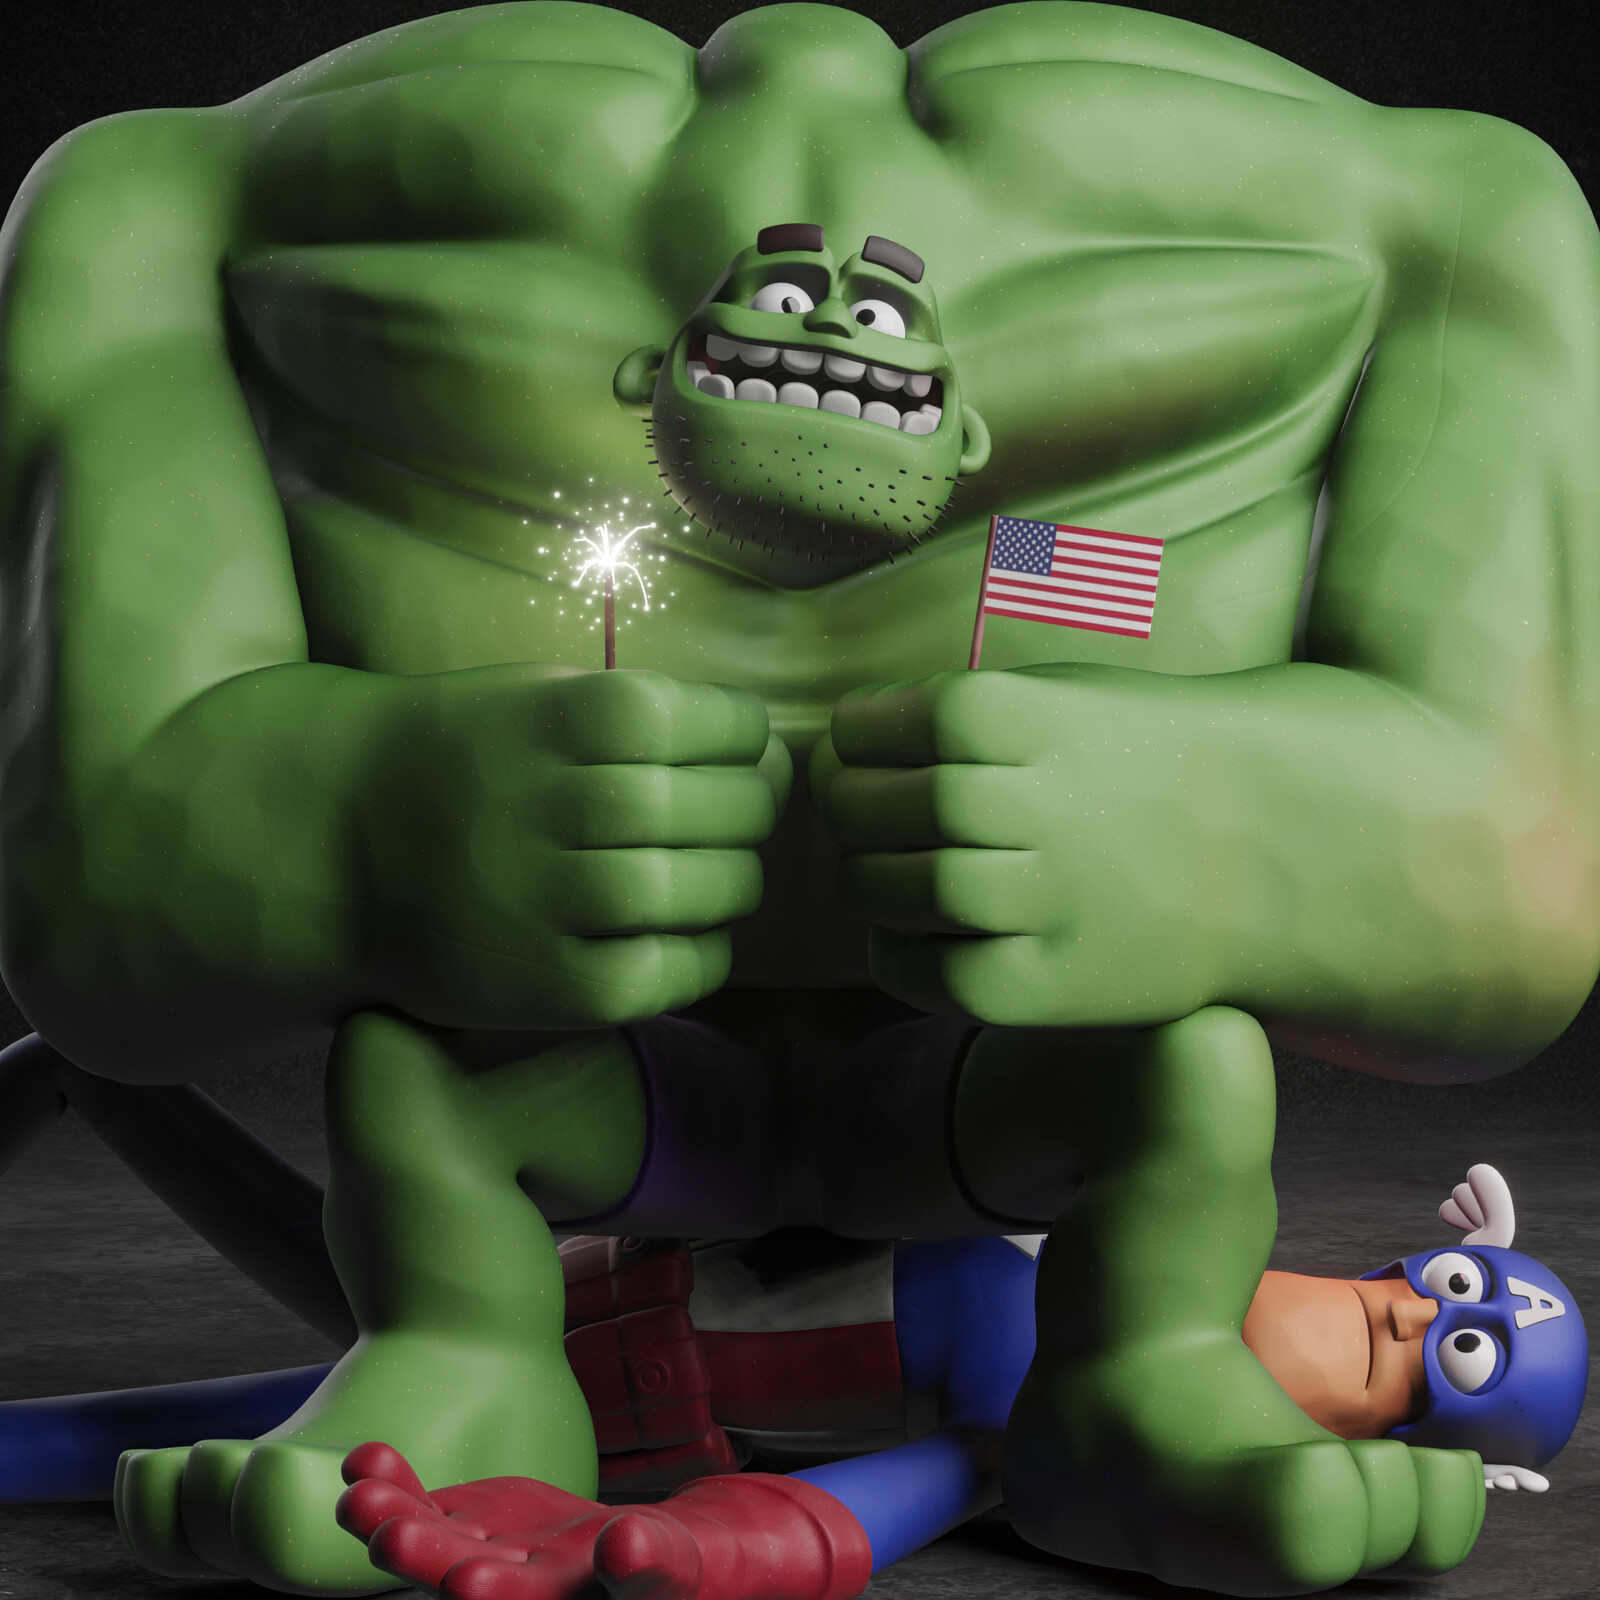 The Hulk (4th of July)